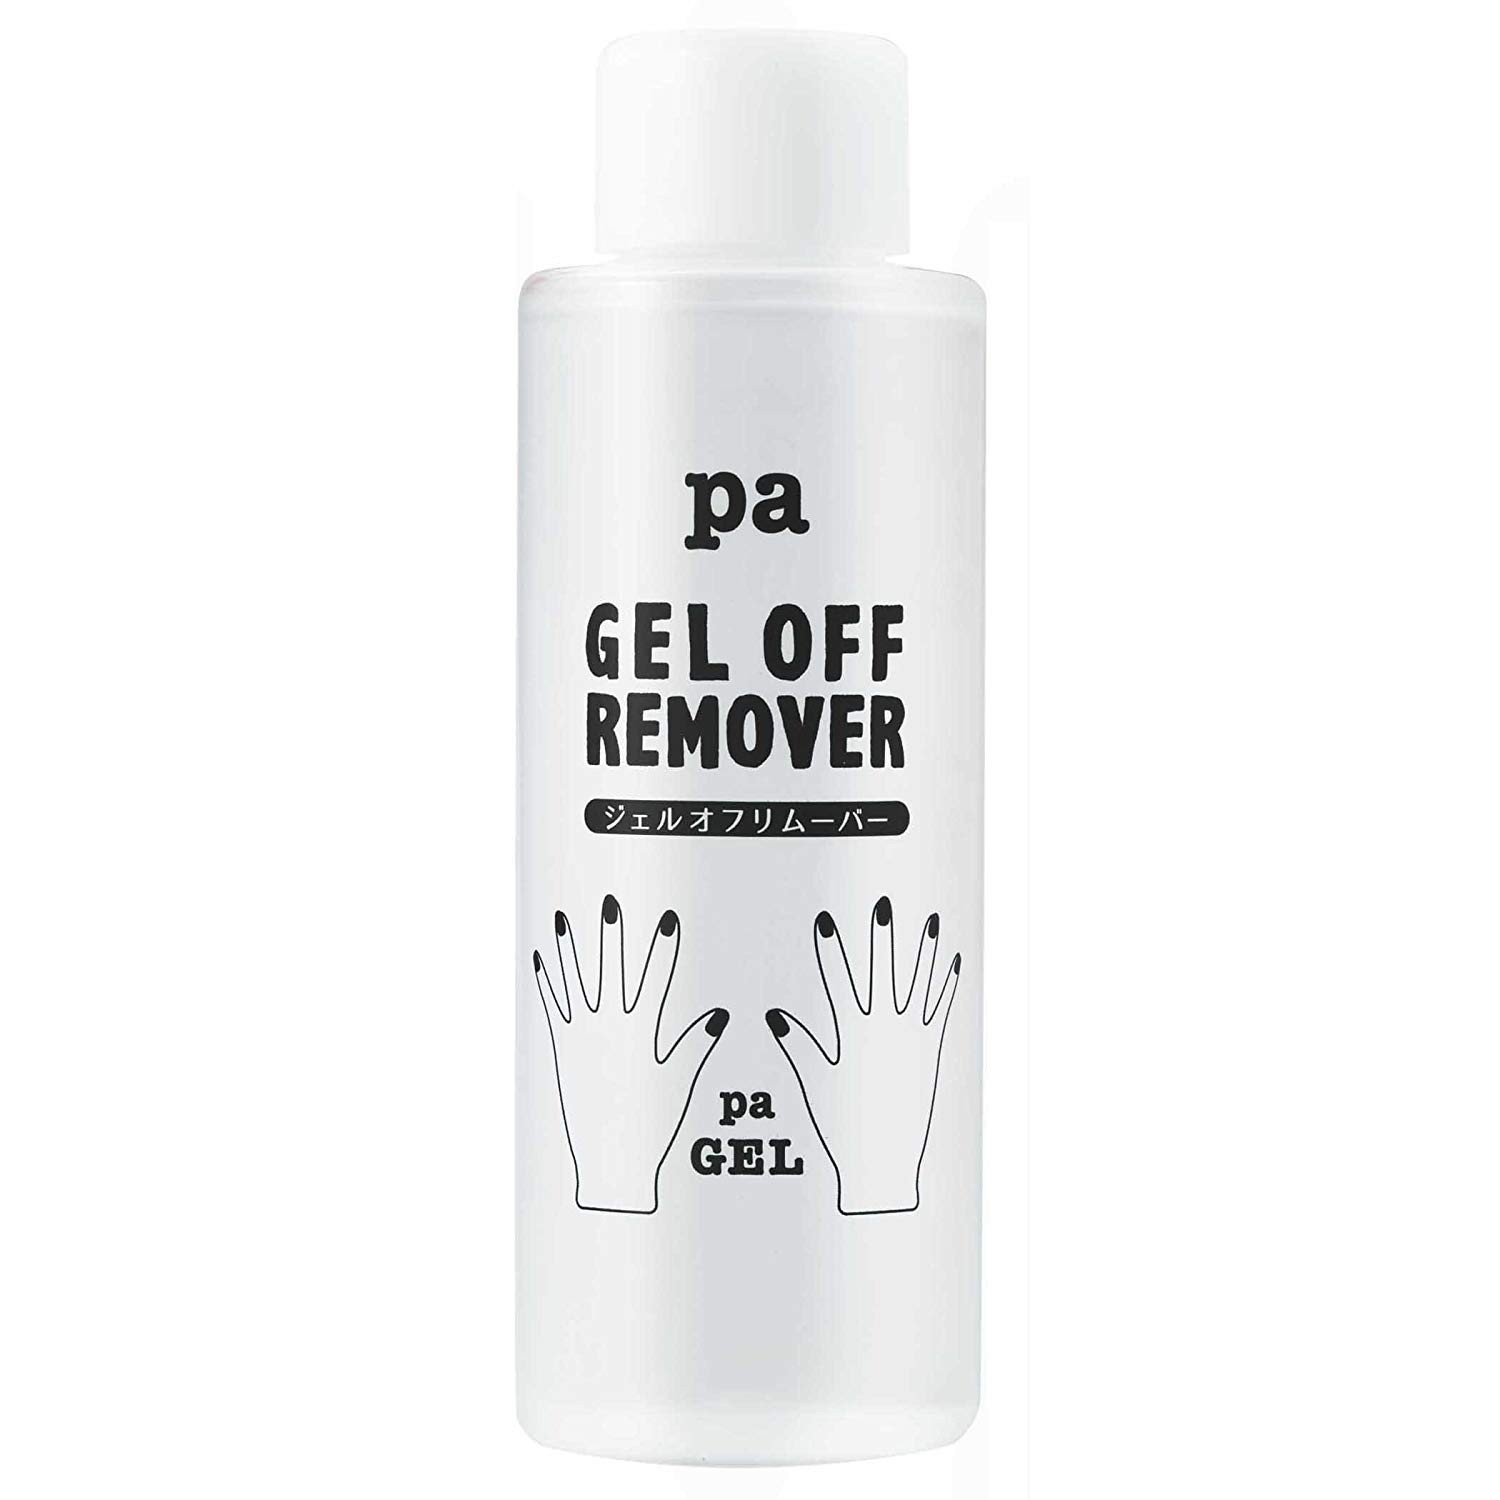 pa Gel Off Remover pagd-02